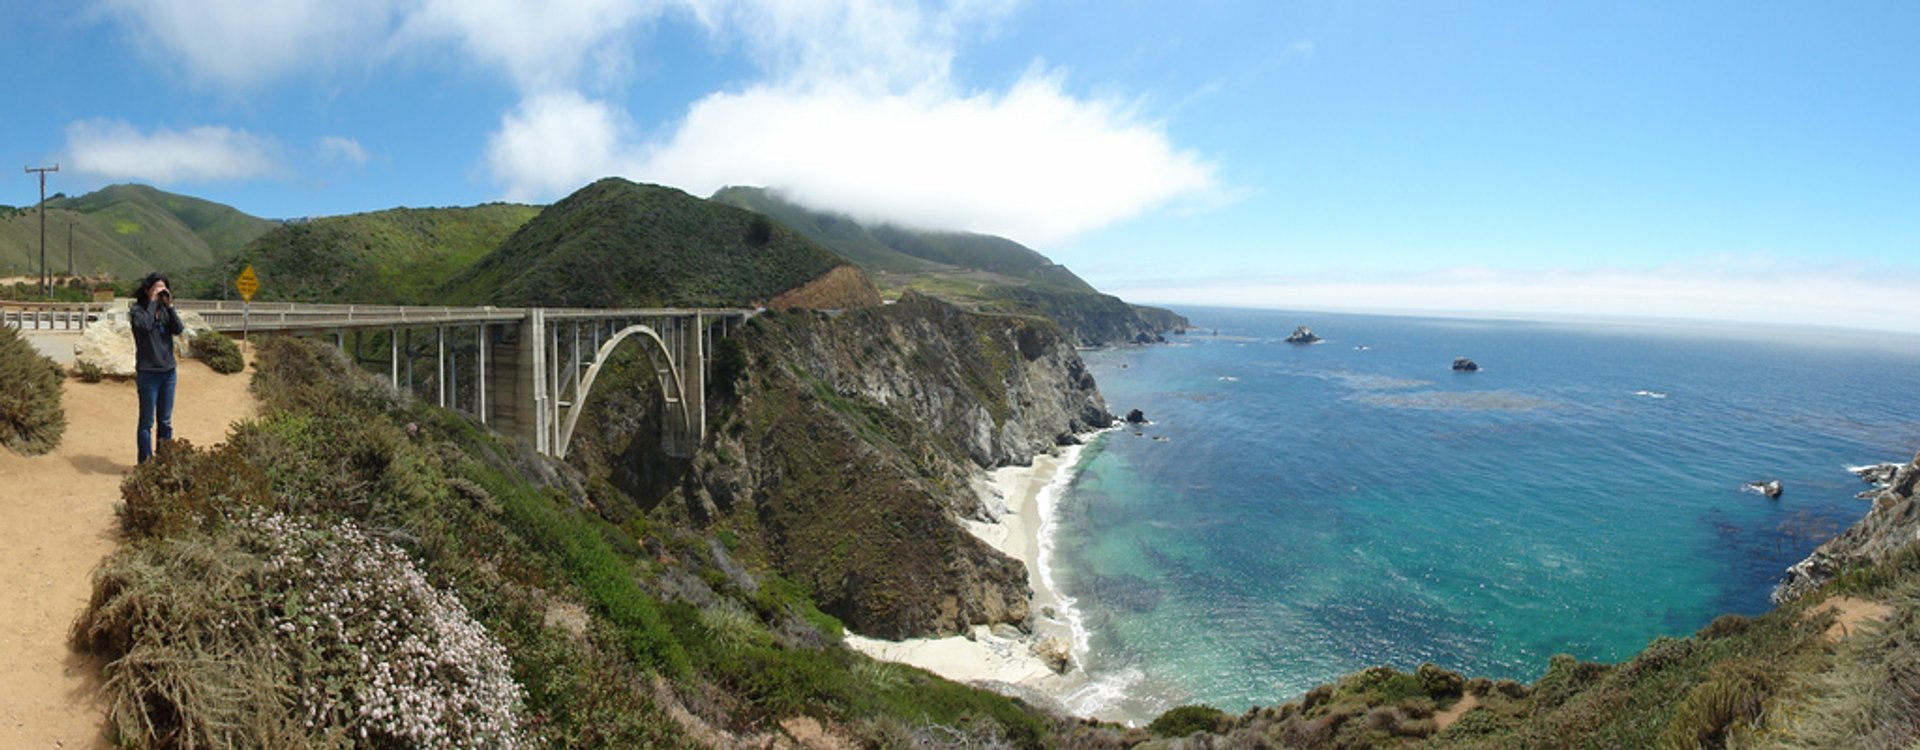 Big Sur in California - Best Season 2019